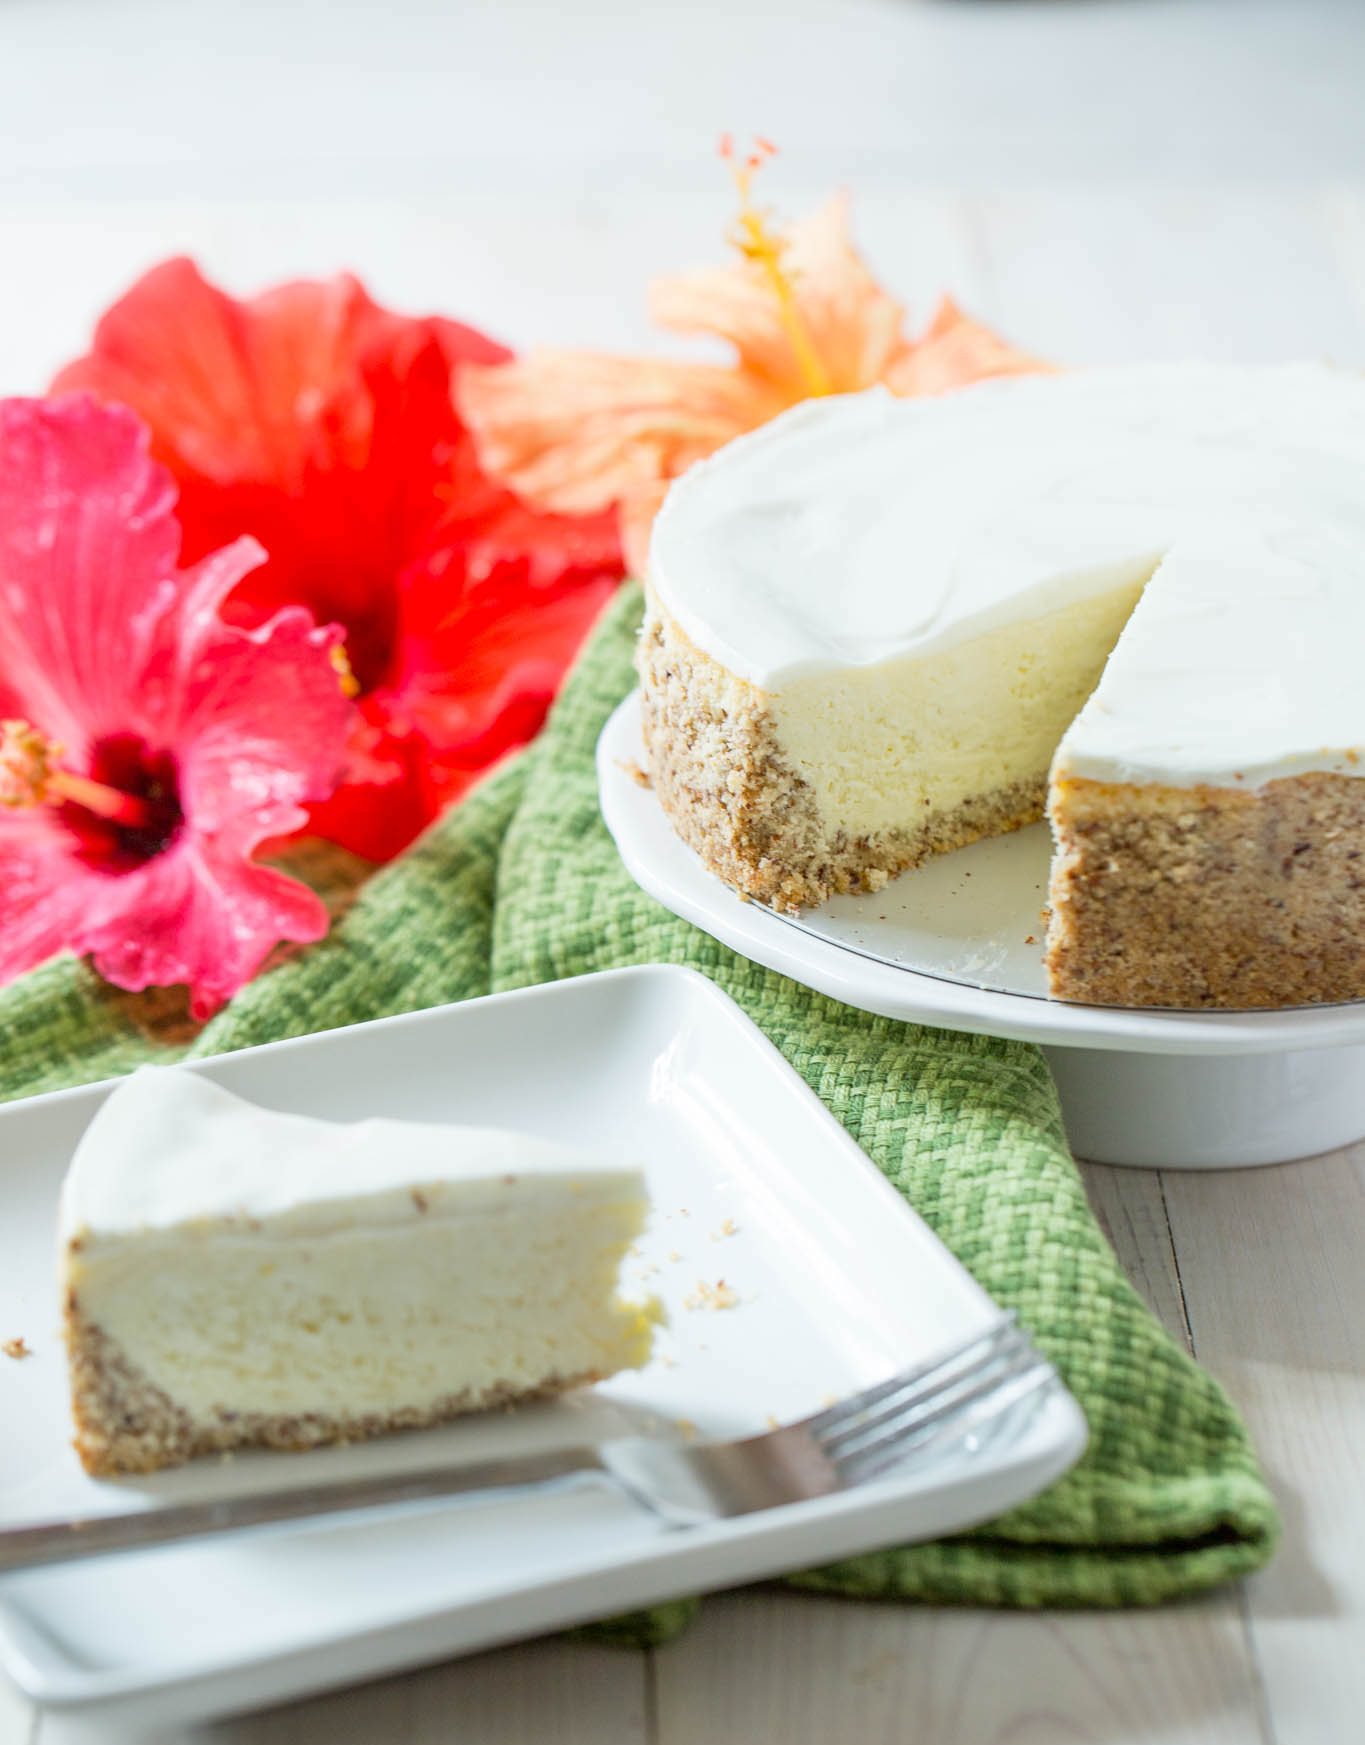 Keto Cheesecake – A Low Carb Cheesecake made in the Instant Pot!